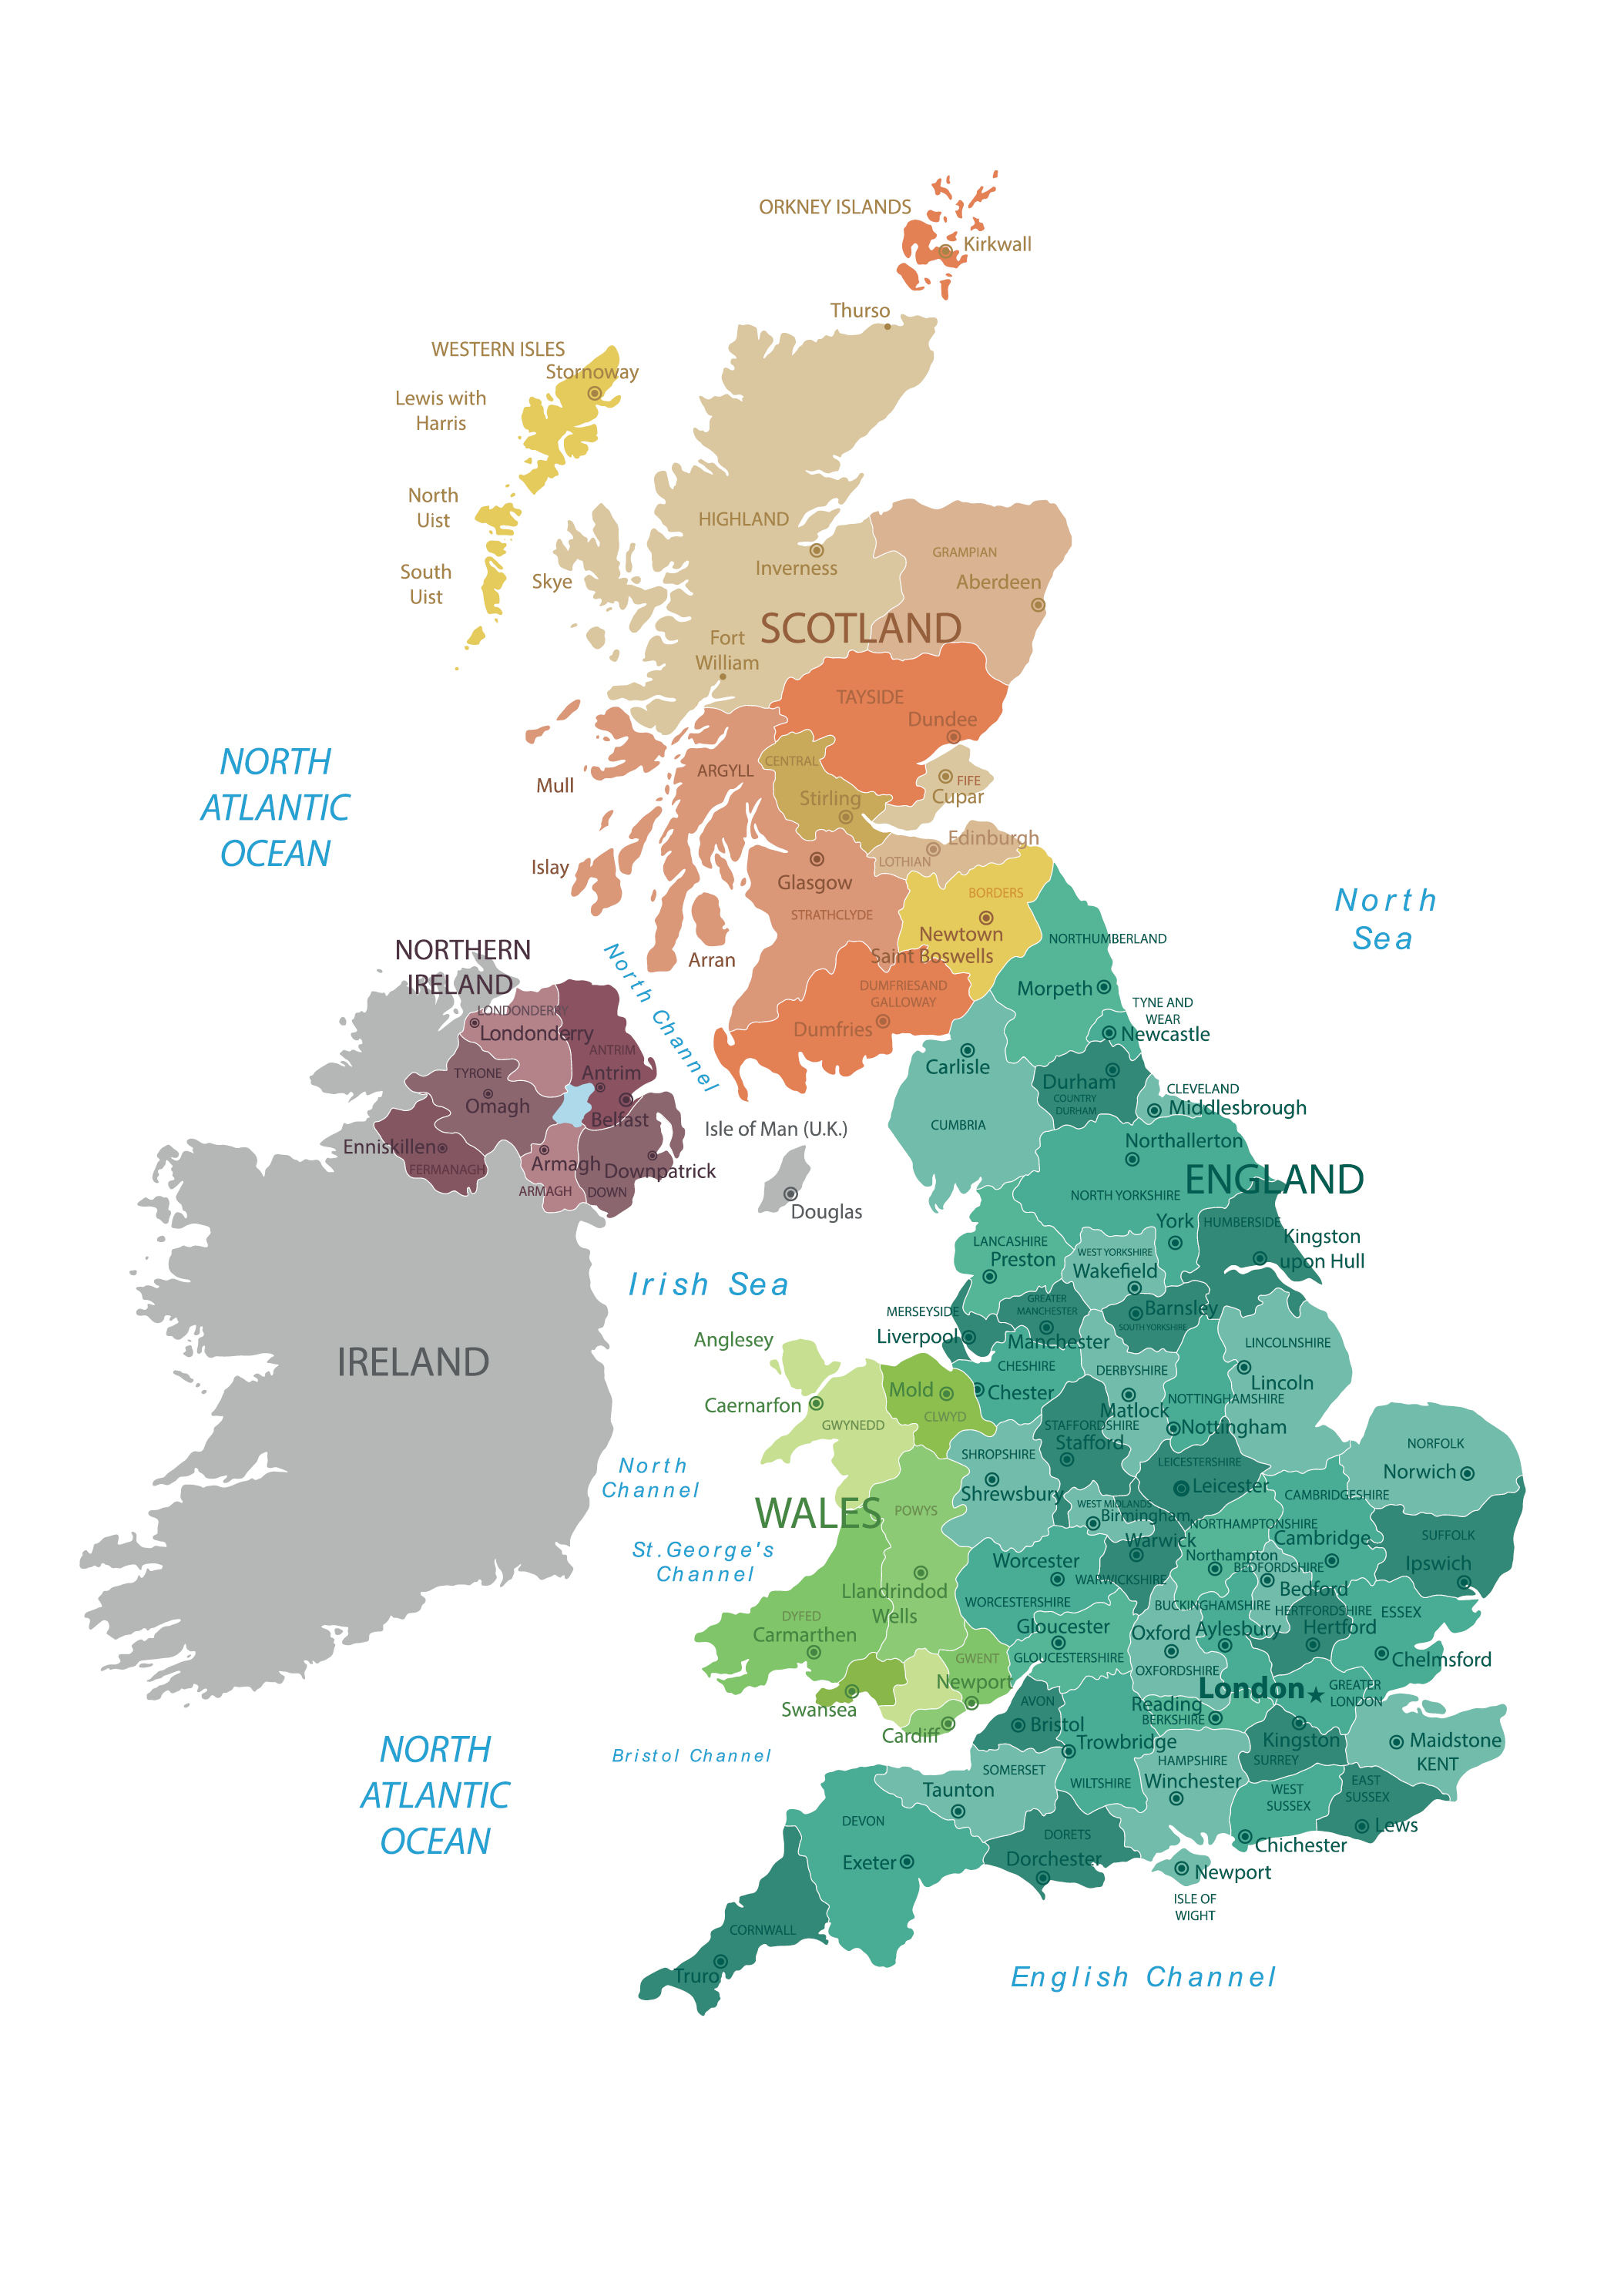 Full Preview of Map of the United Kingdom